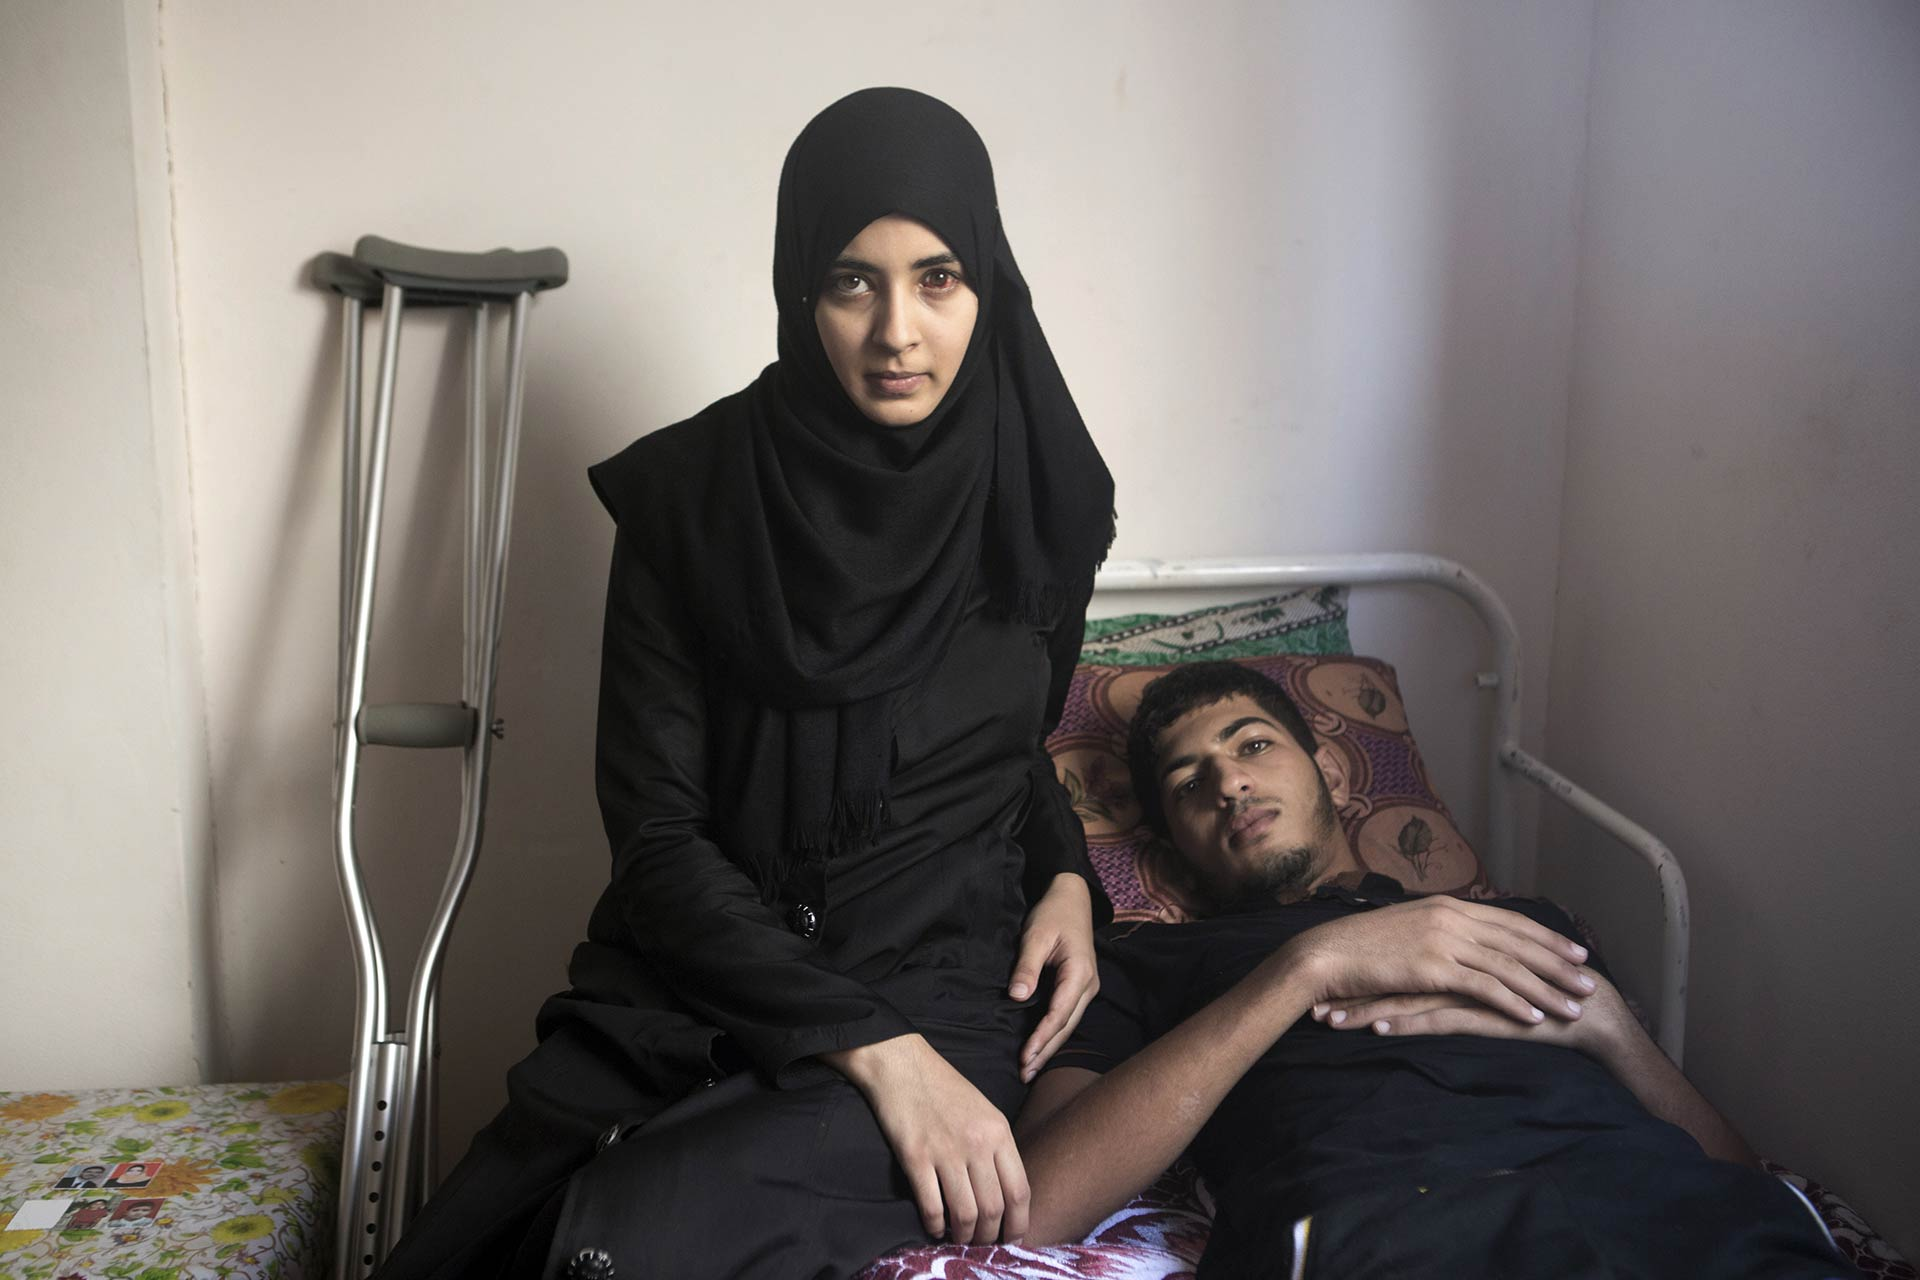 """I heard Wafaa' screaming from under the rubble. I could see only her toes moving. I tried to remove the stones that fell on her, but it was too much. Instead, I started to dig beneath her and managed to pull her out. She was wounded in her head, bleeding from her eye. Her arm was also injured. Momen was three meters away from Wafaa'. He was also screaming."" - recalls Mustafa."